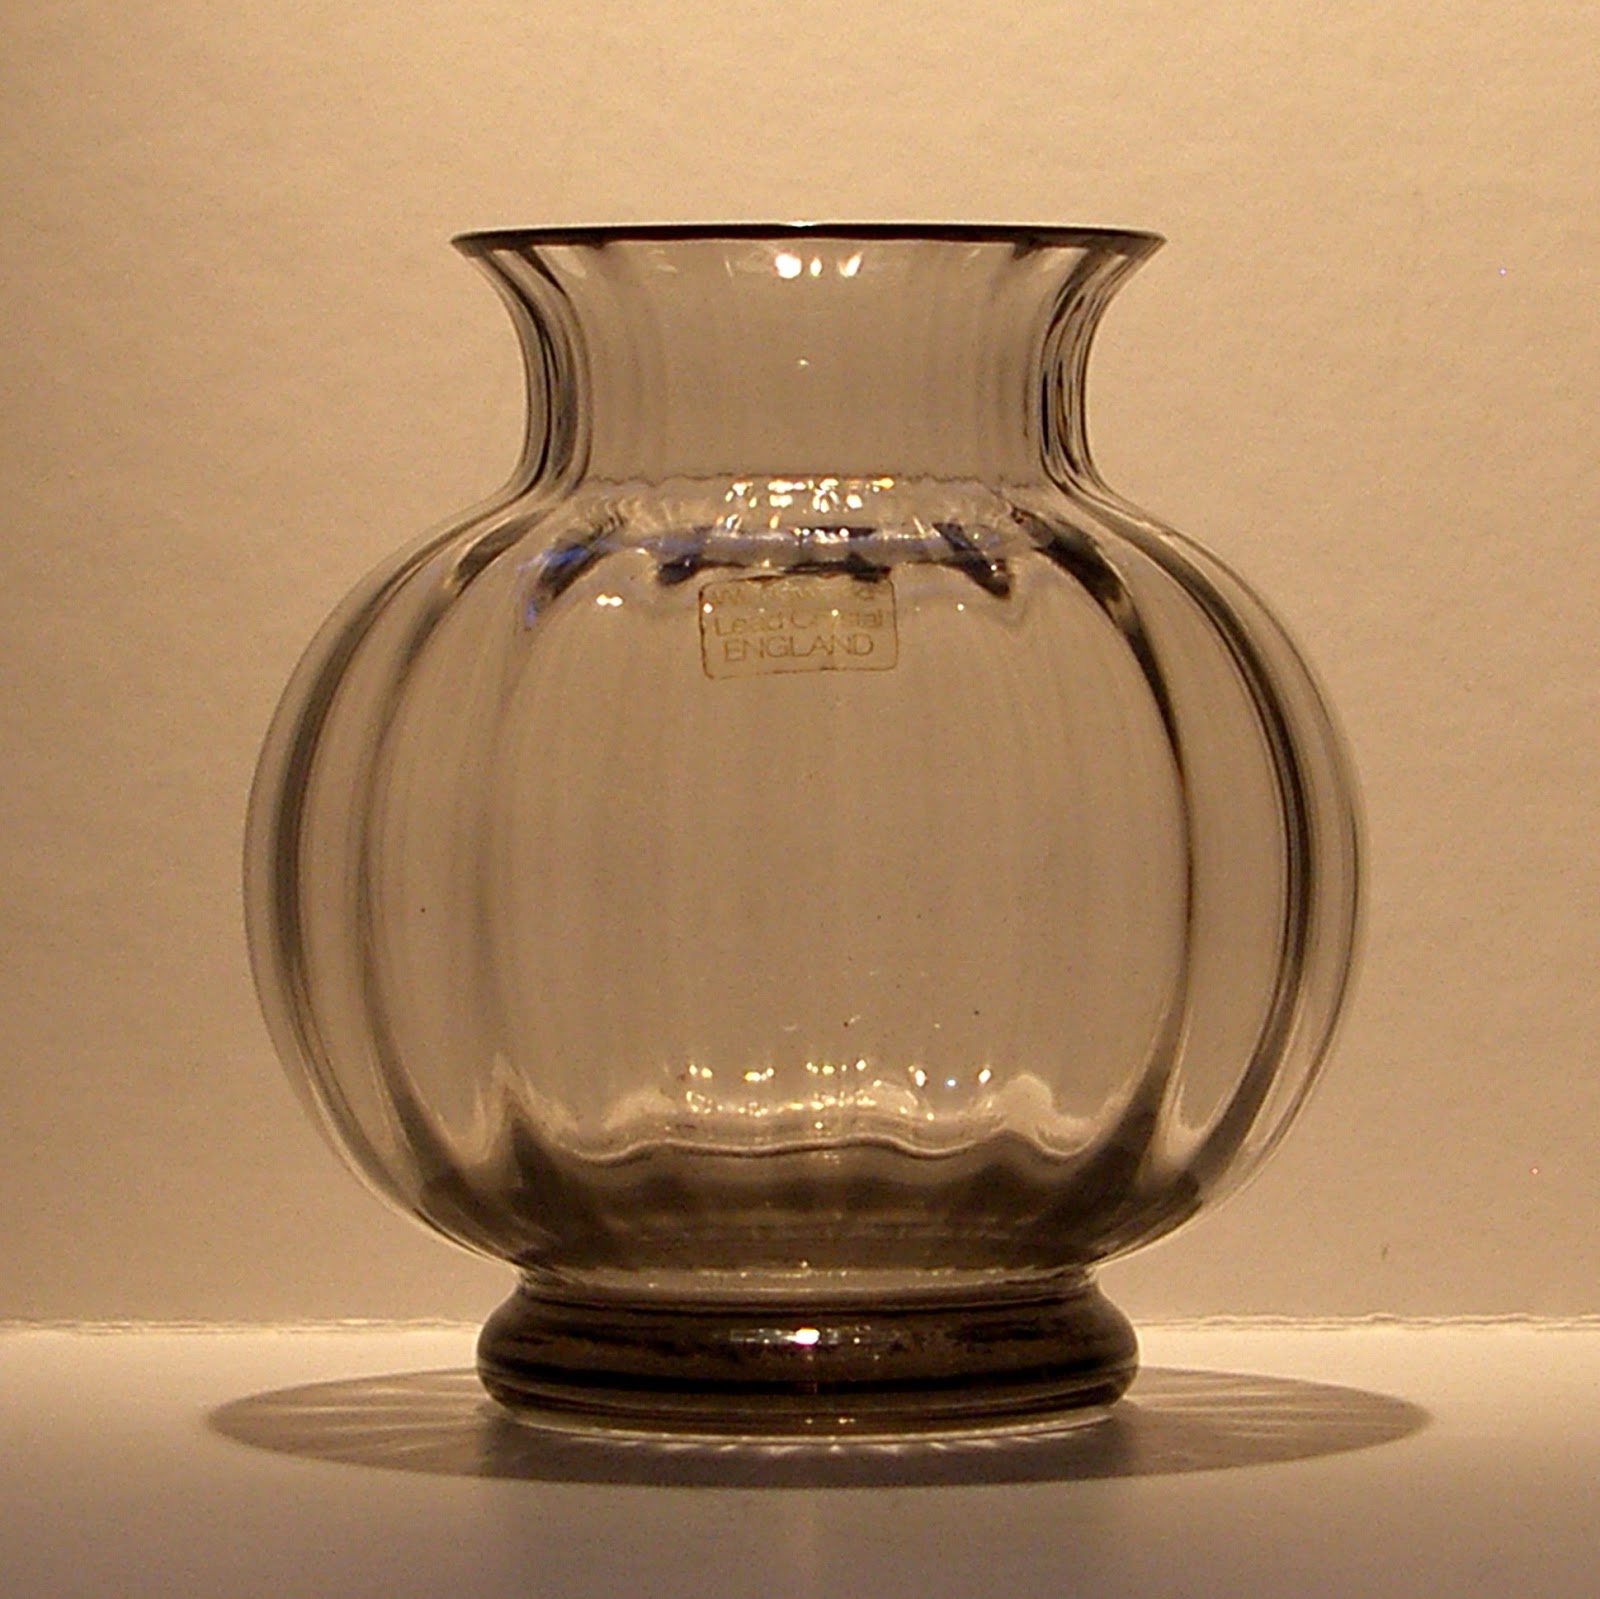 Frank thrower glass designs 1980s wedgwood crystal wedgwood crystal glass info photo links reviewsmspy